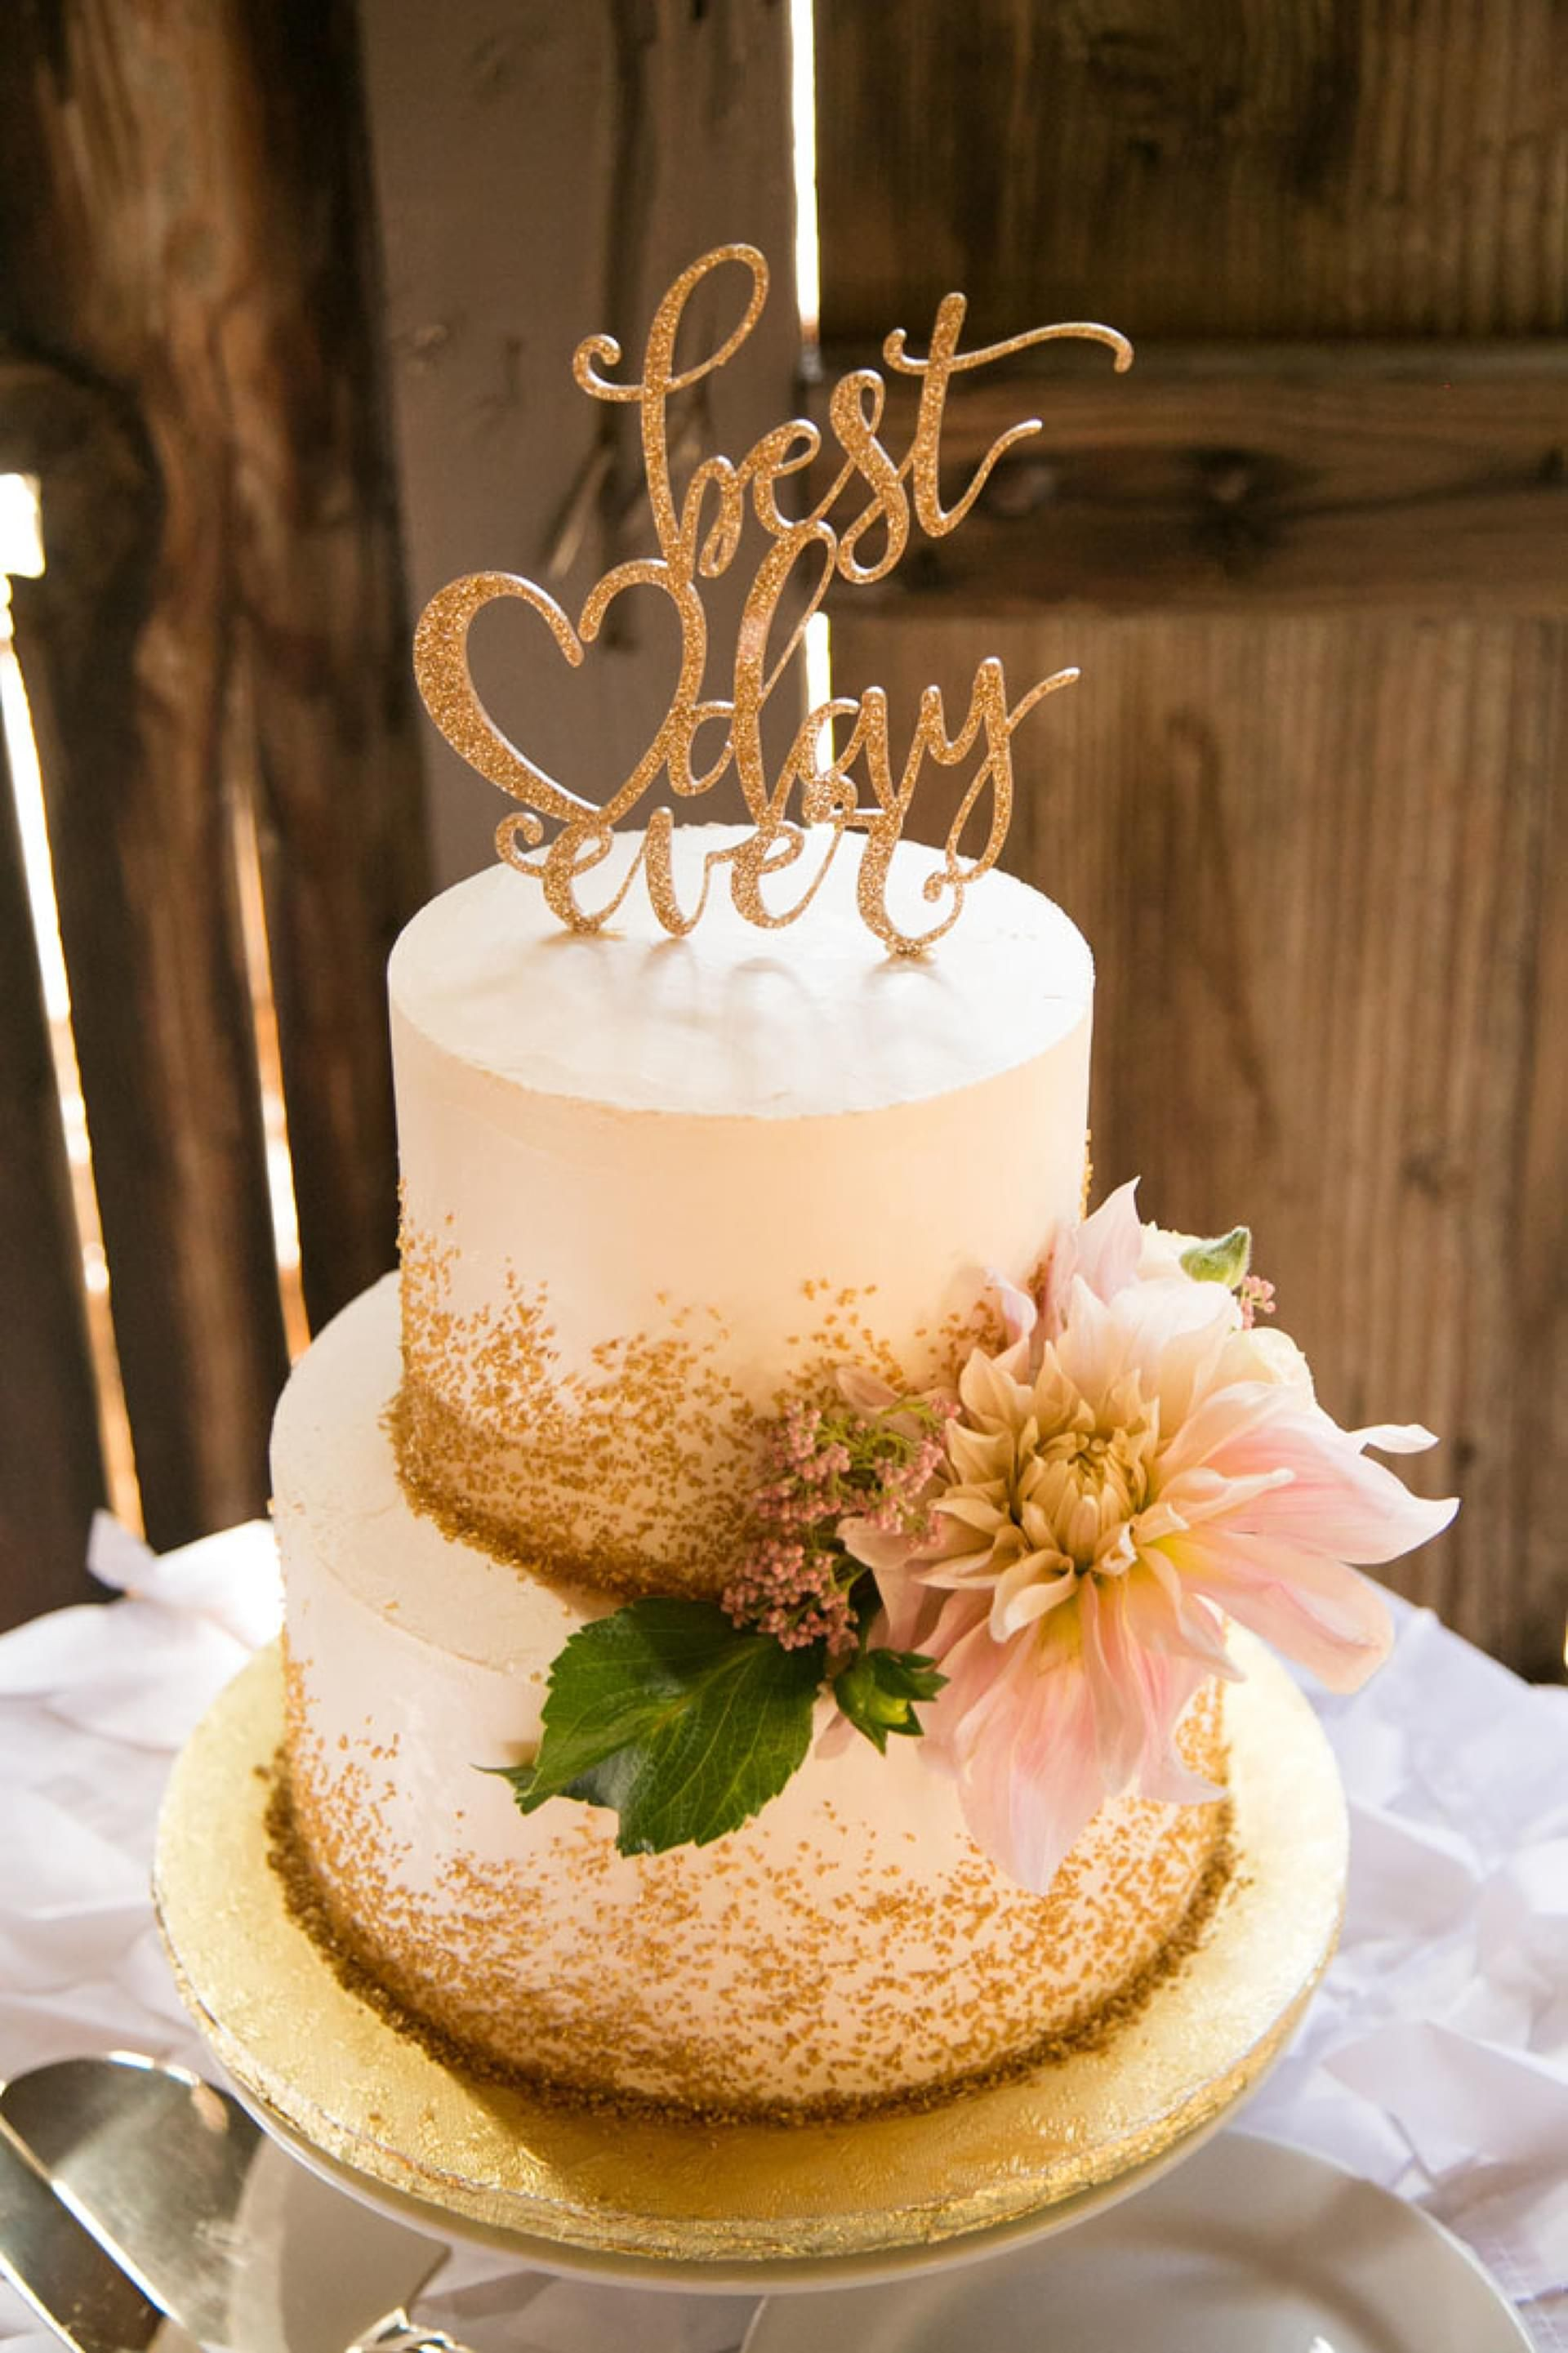 The Smarter Way To Wed Wedding Cake Gold Sprinkles And